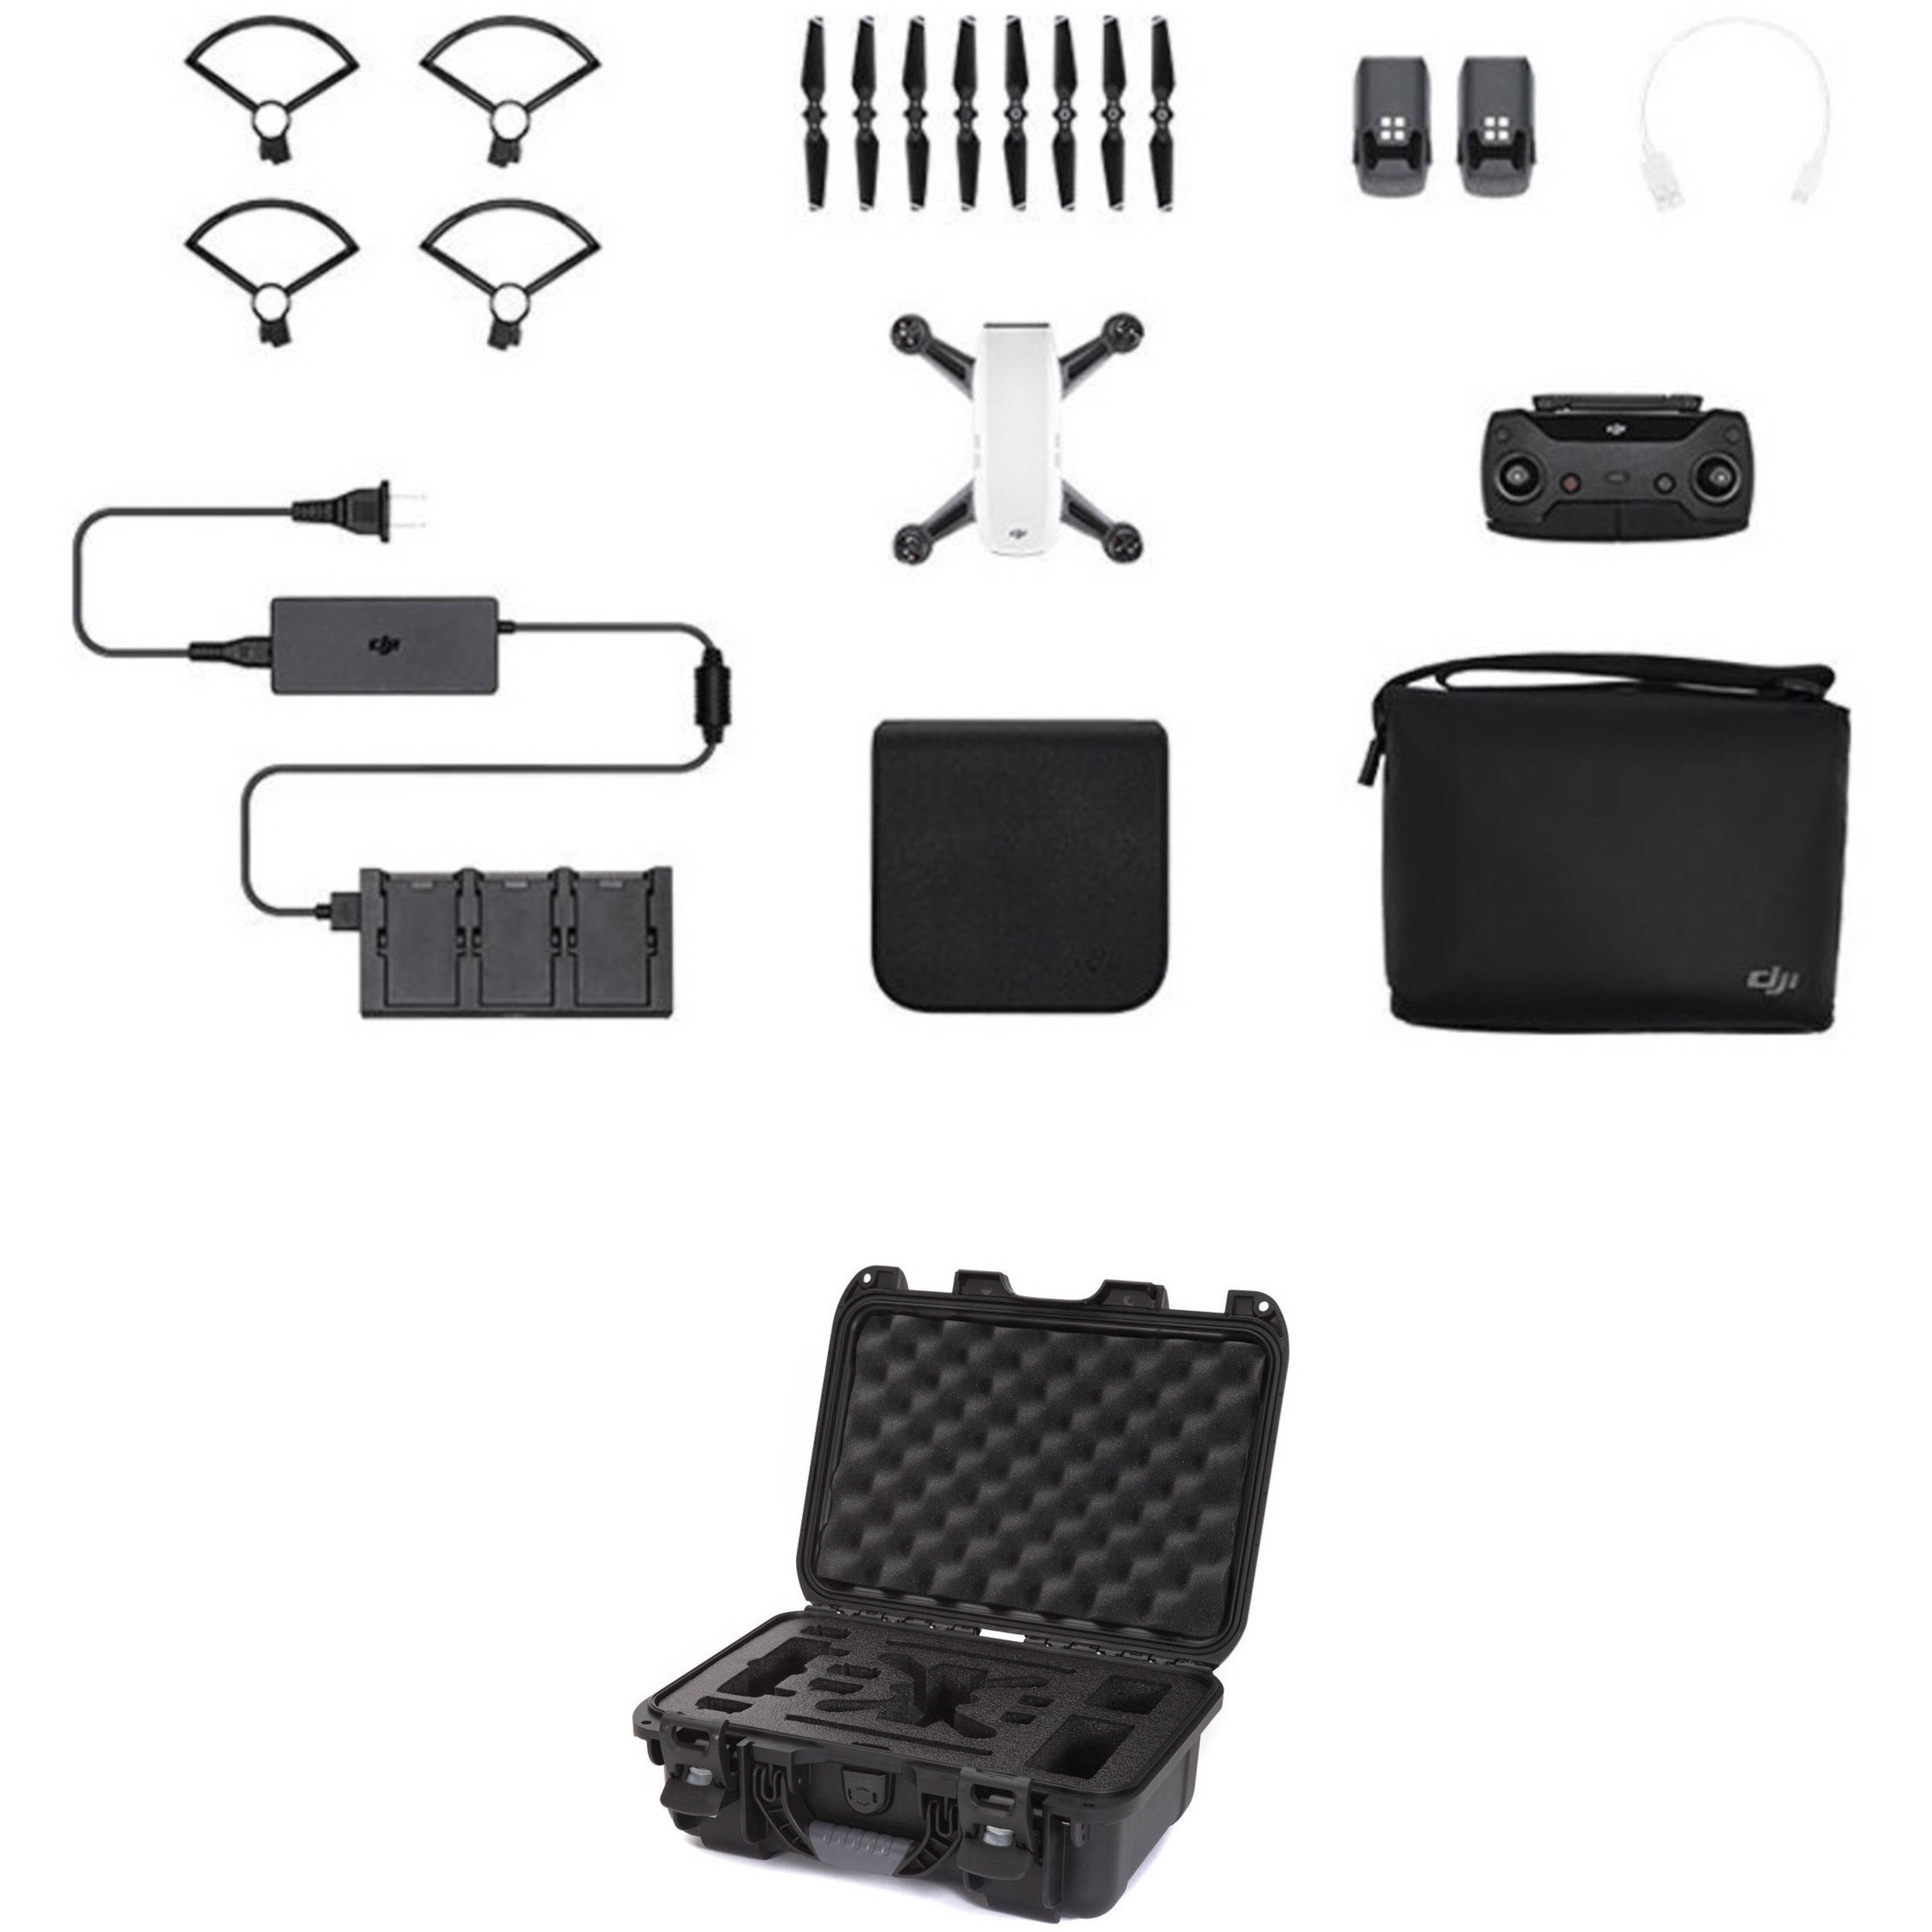 DJI Spark Quadcopter Fly More Combo Kit With Hard Case Alpine White Black